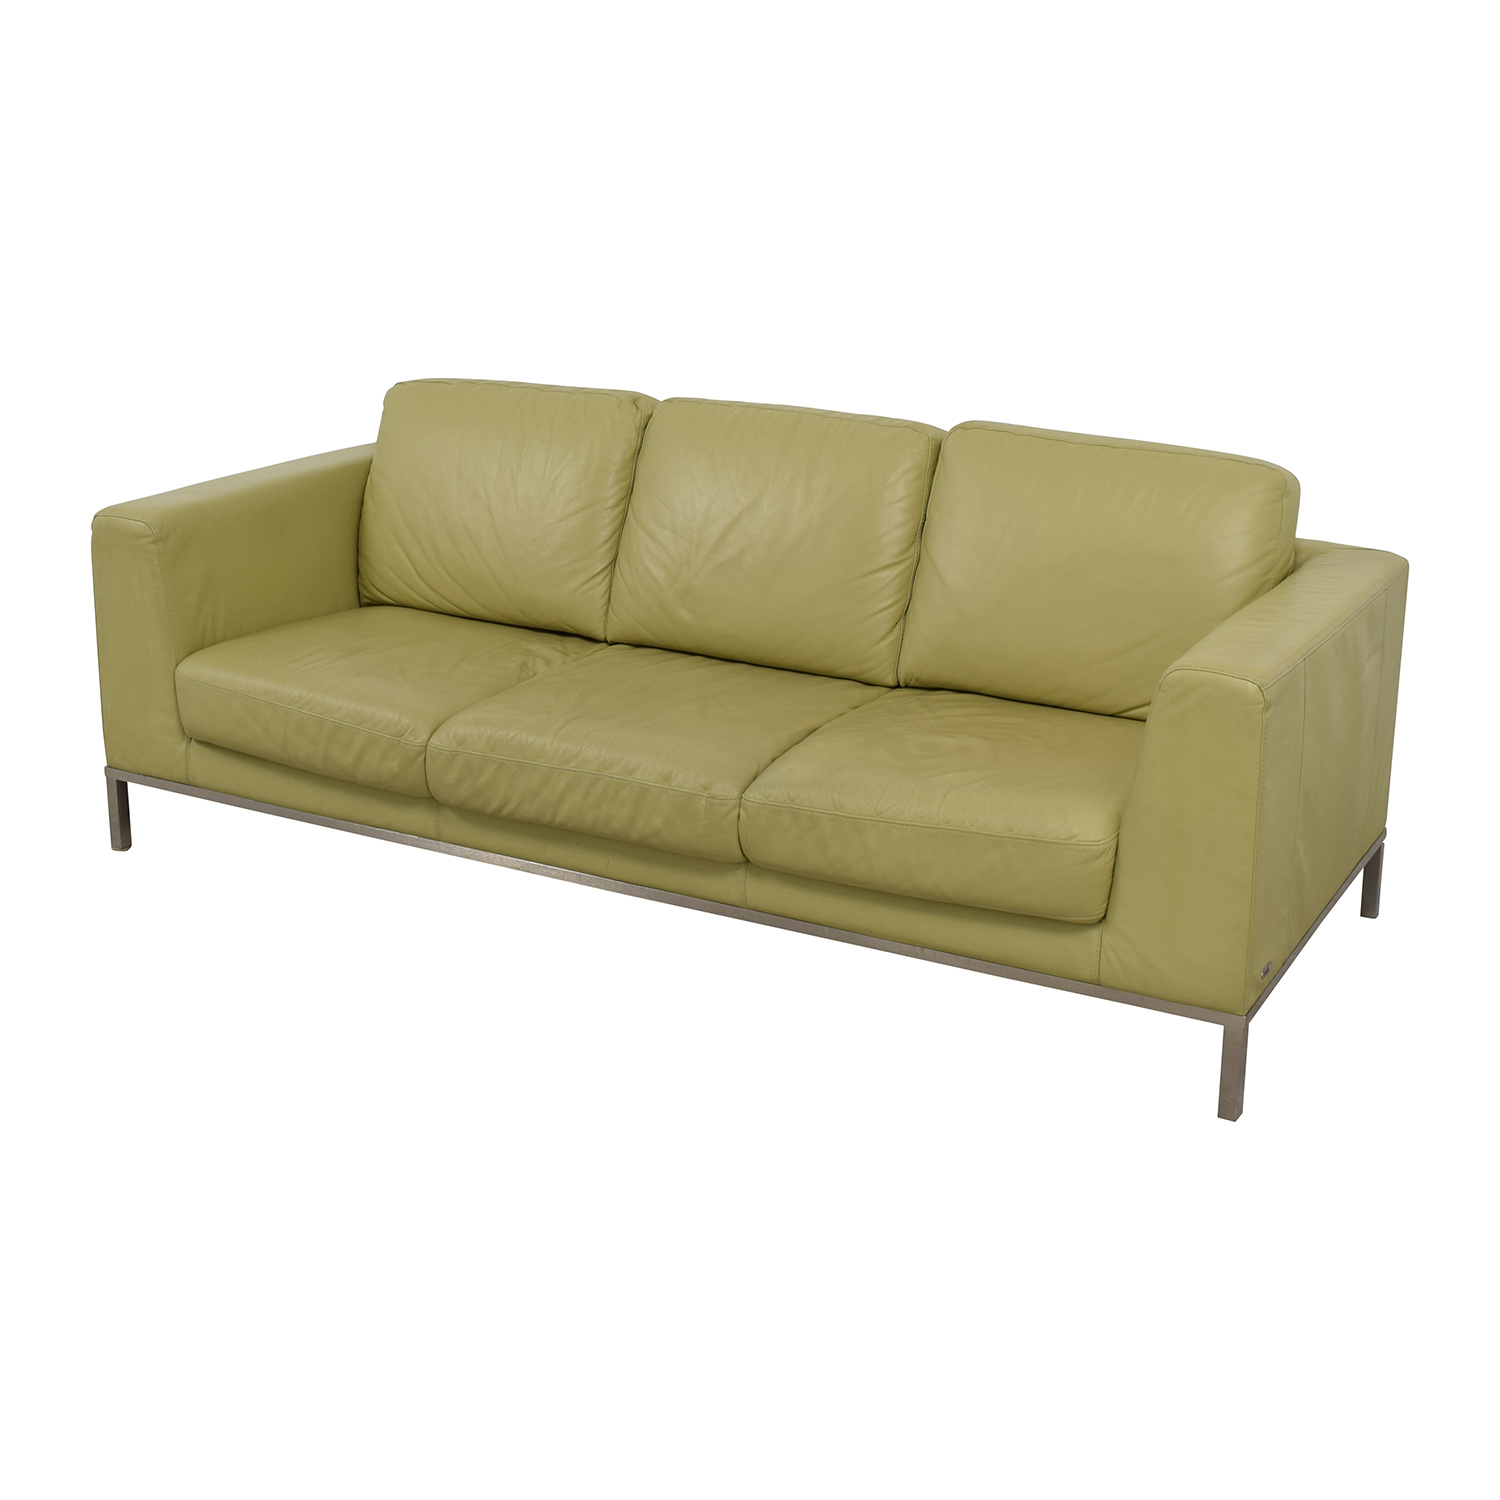 Leather Loveseat Italsofa Brown Leather Loveseat Review Home Co